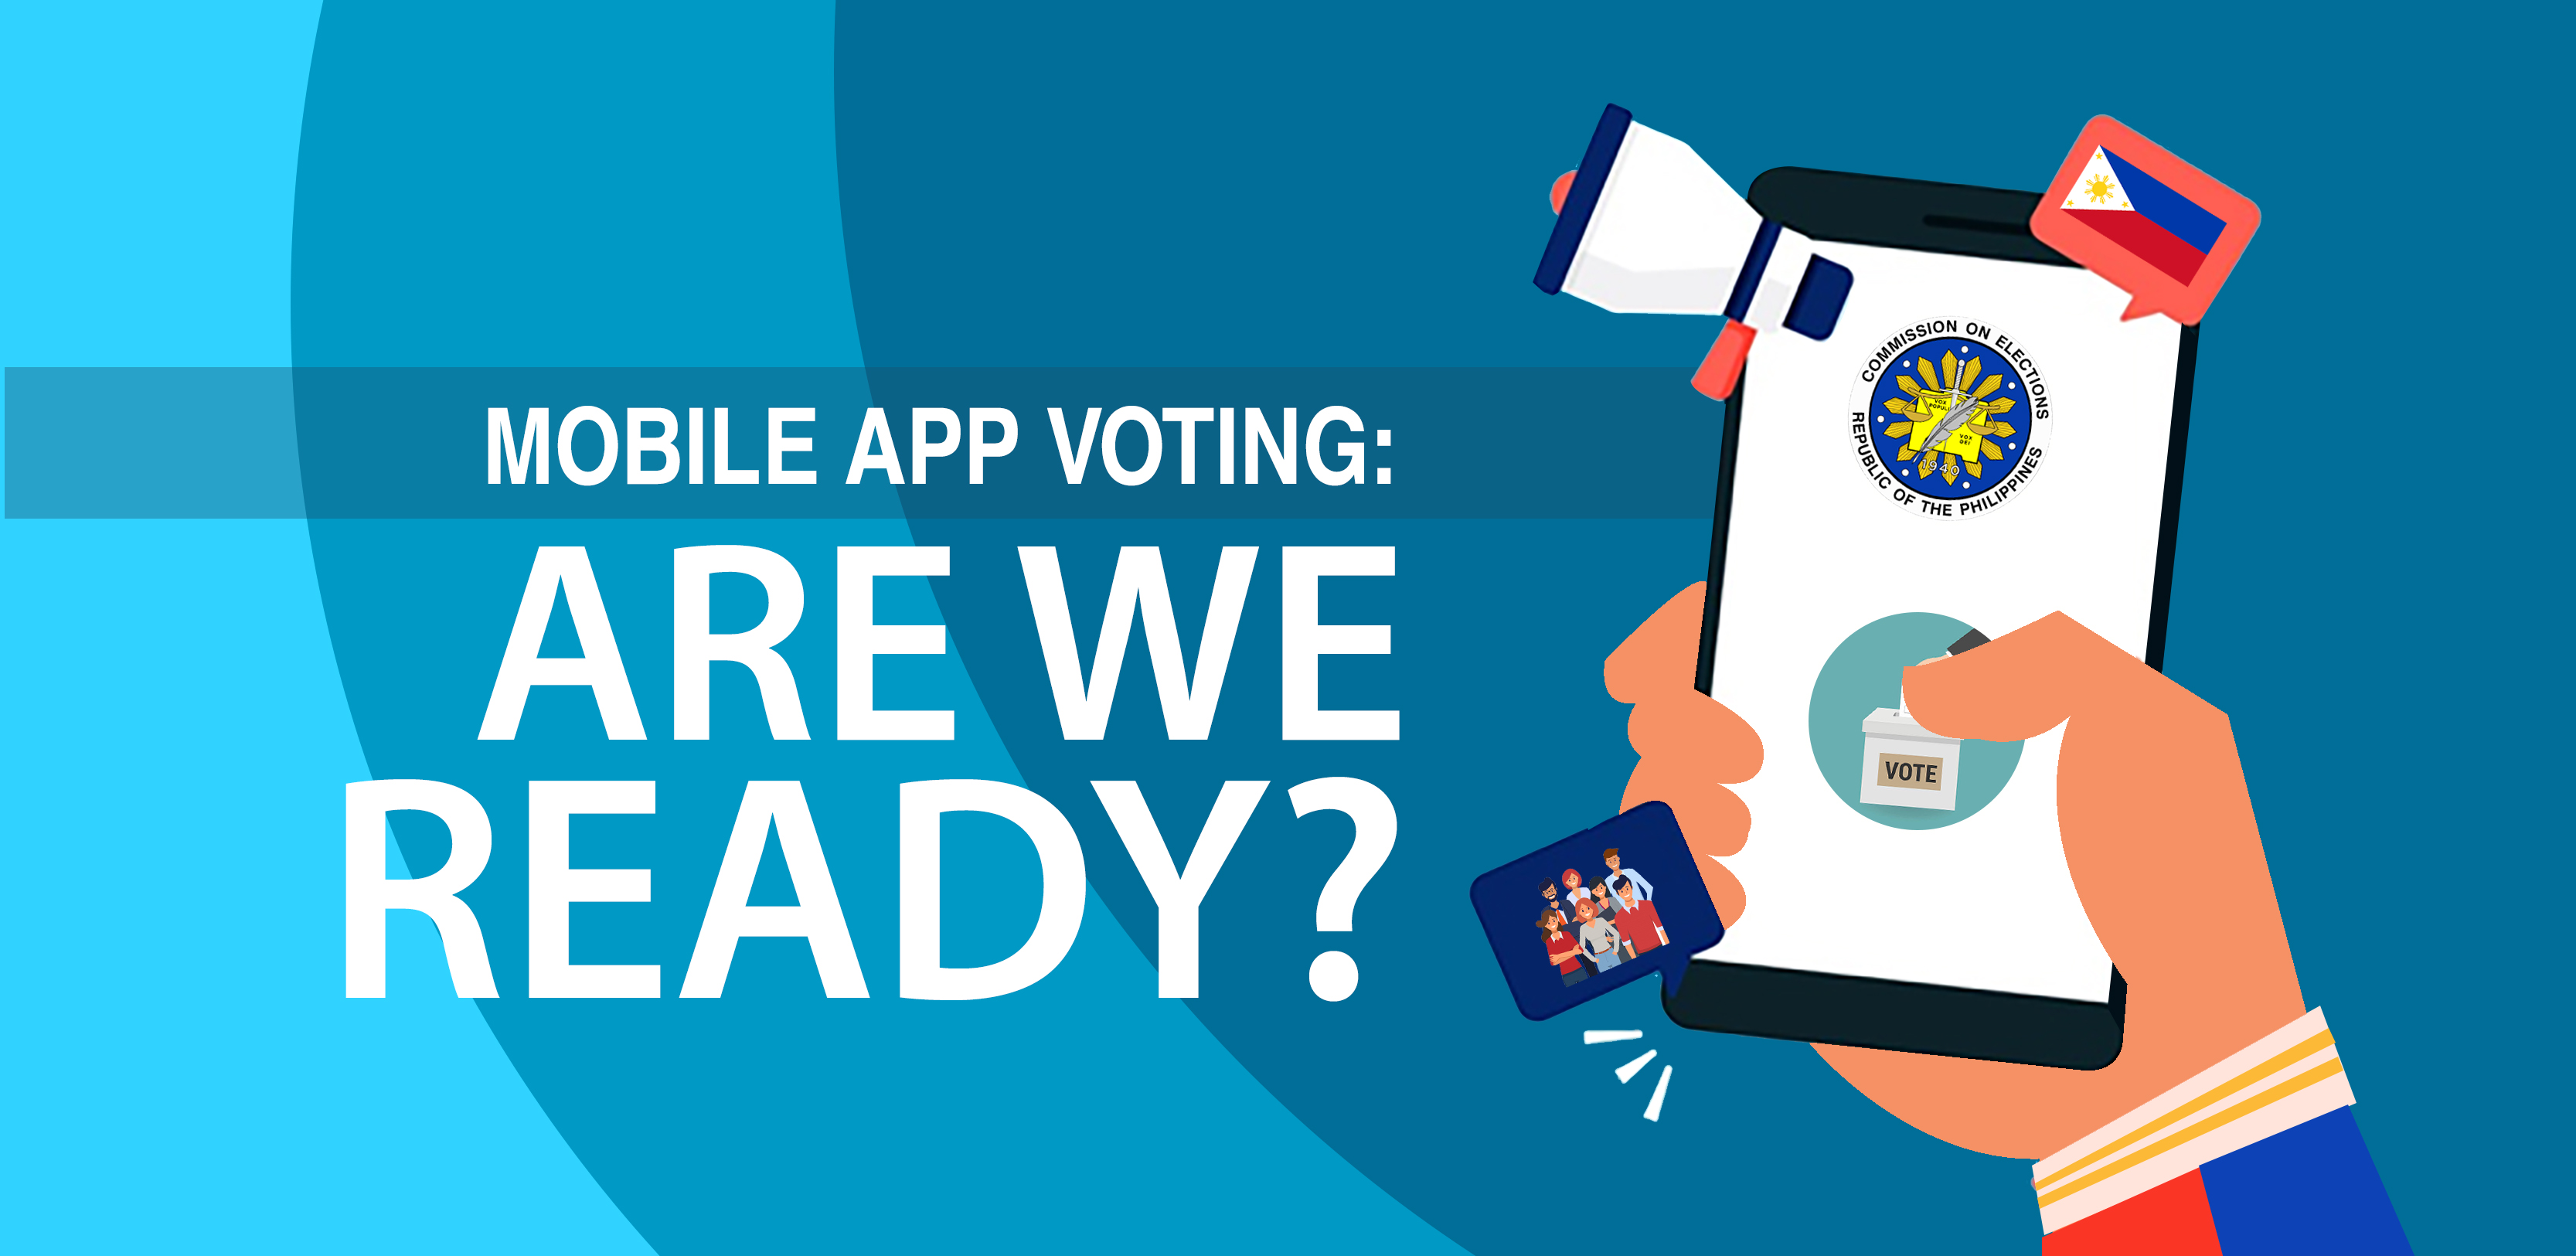 Mobile app voting — Are we ready?